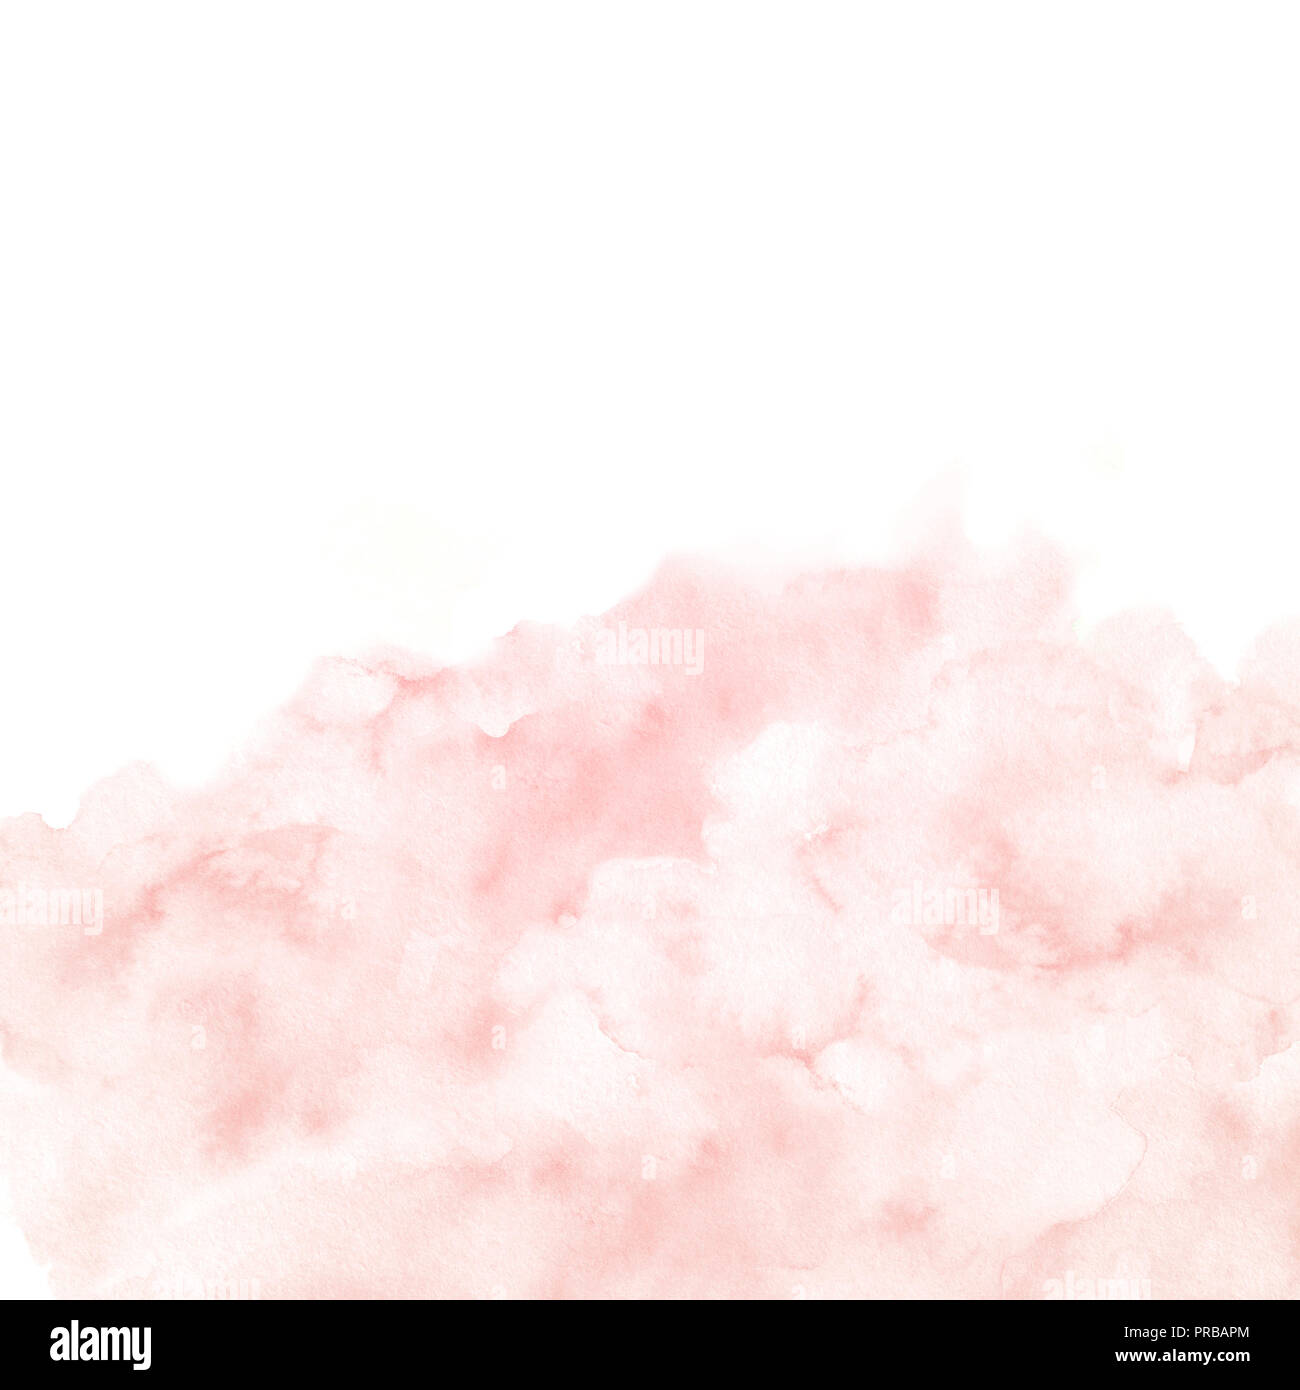 Watercolor Pink Border Texture Isolated On White Background Hand